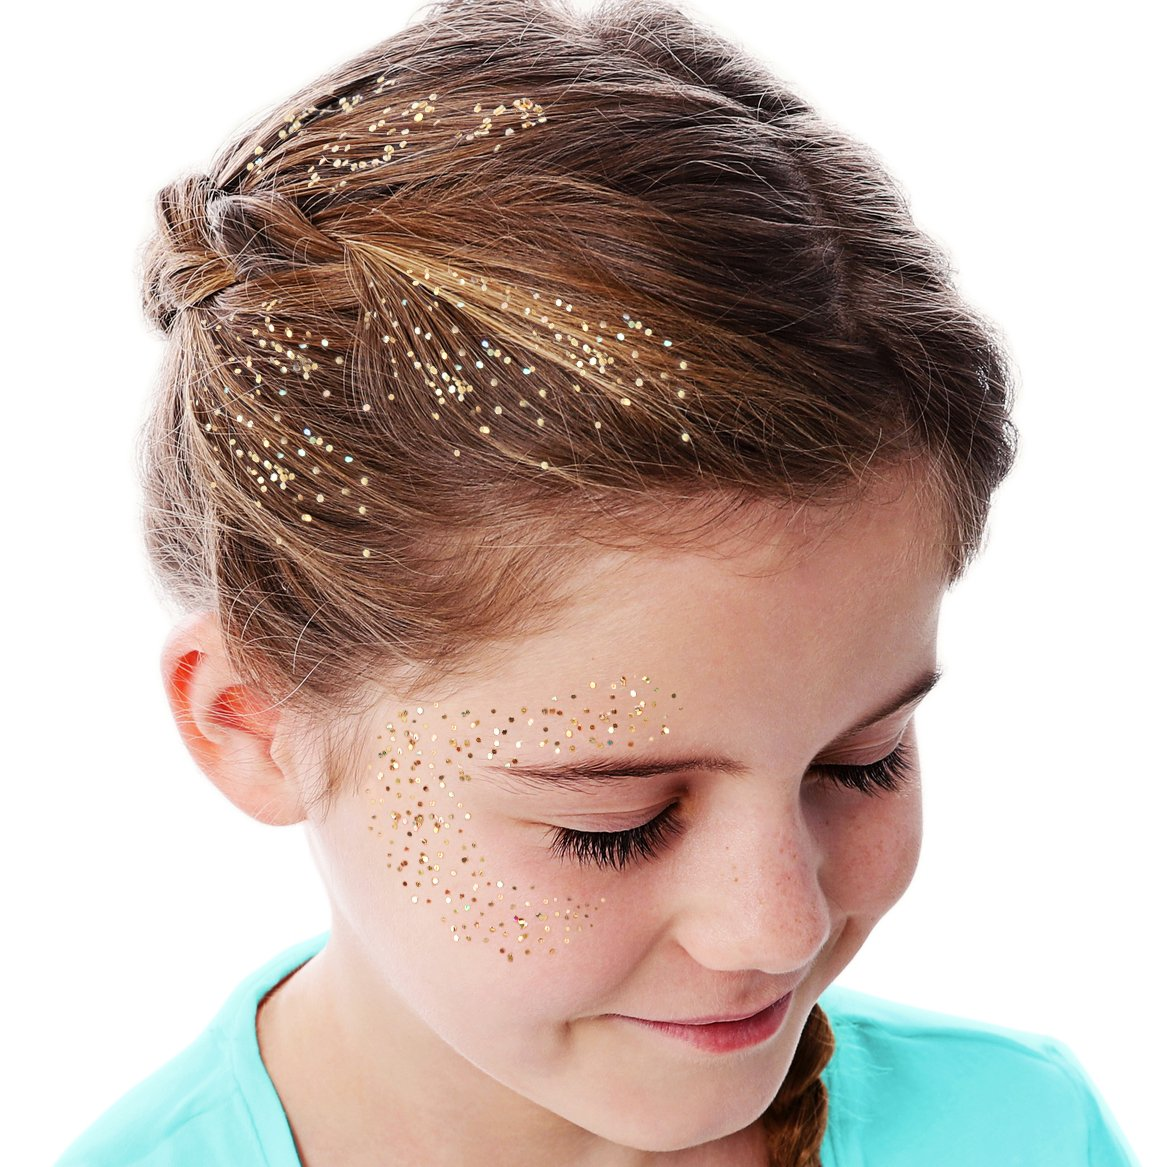 GirlZone GIFTS FOR GIRLS: Face, Hair & Body Cosmetic Glitter Makeup. Great Gift, Birthday Present Idea For Girls 4 5 6 7 8 9 10 years old plus. by GirlZone (Image #9)